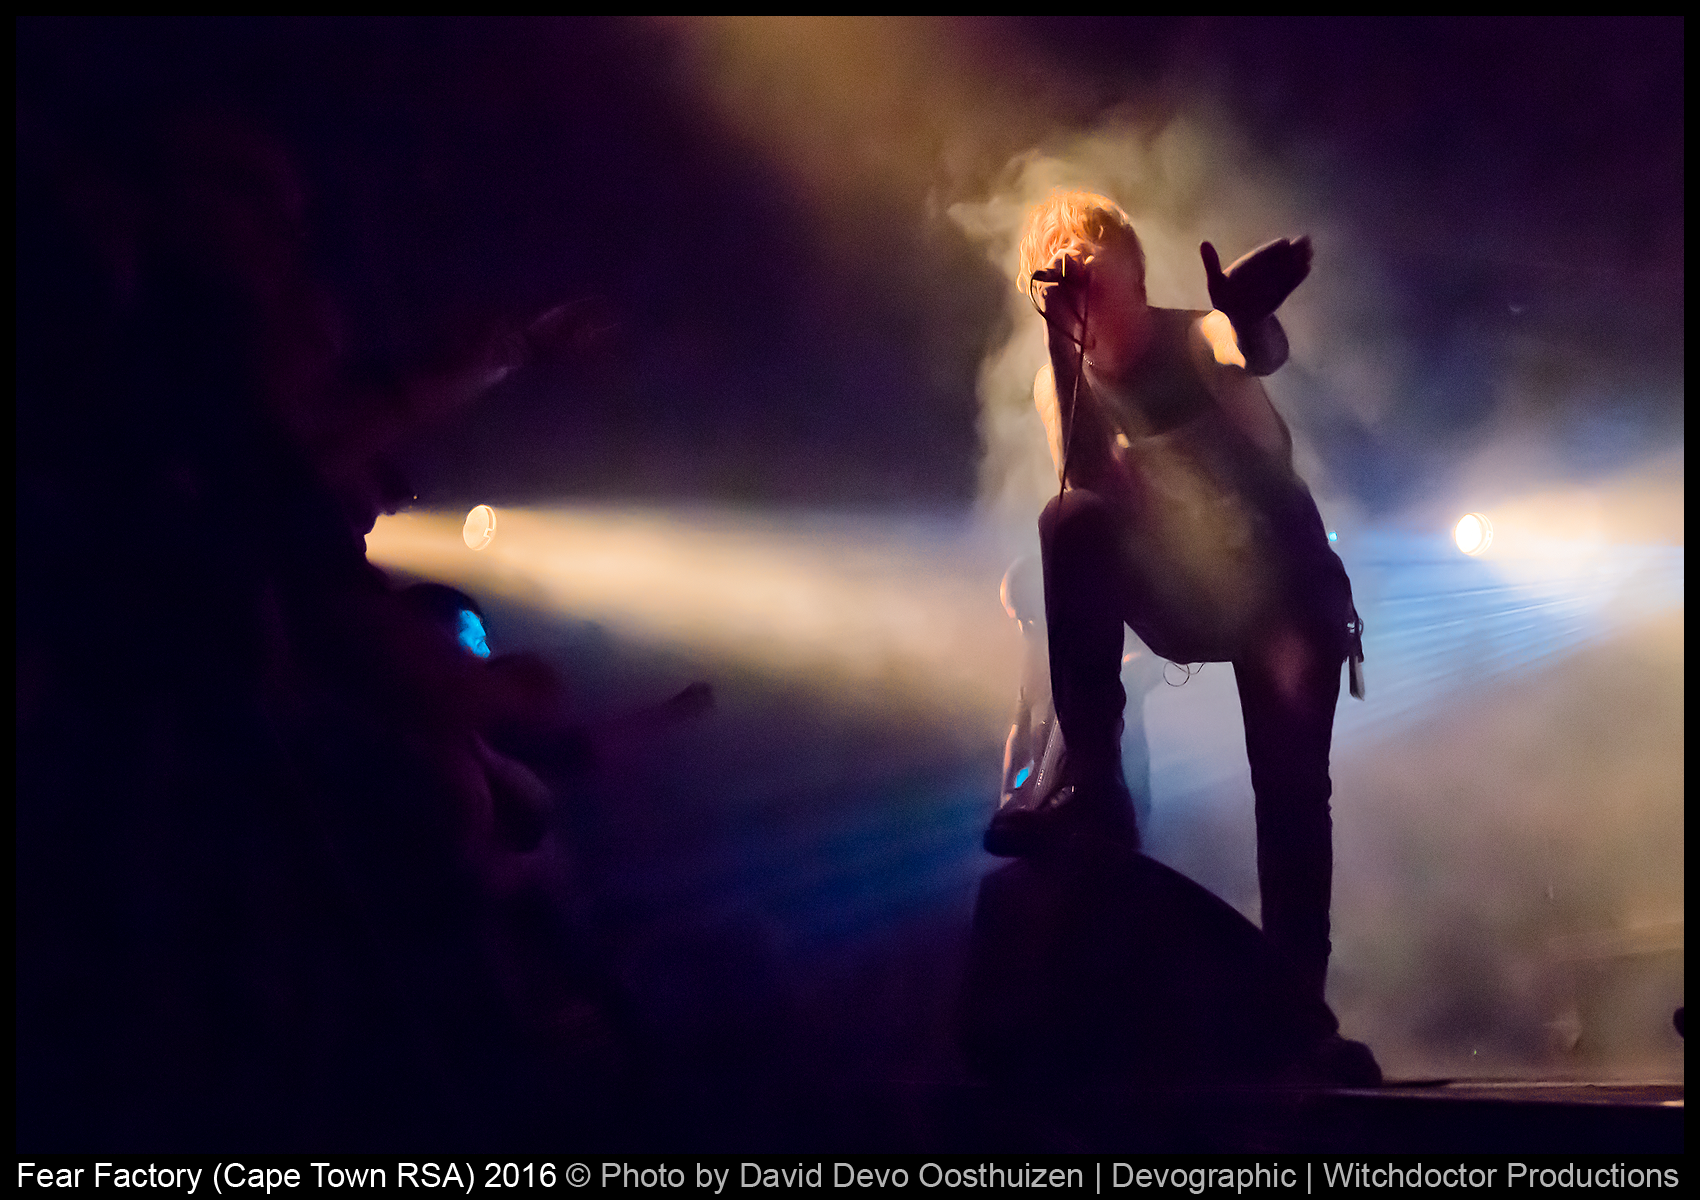 020_Fear_Factory_CPT_Photo_David_Devo_Oosthuien_Devographic_Witchdoctor_Productions_11_Jun_2016